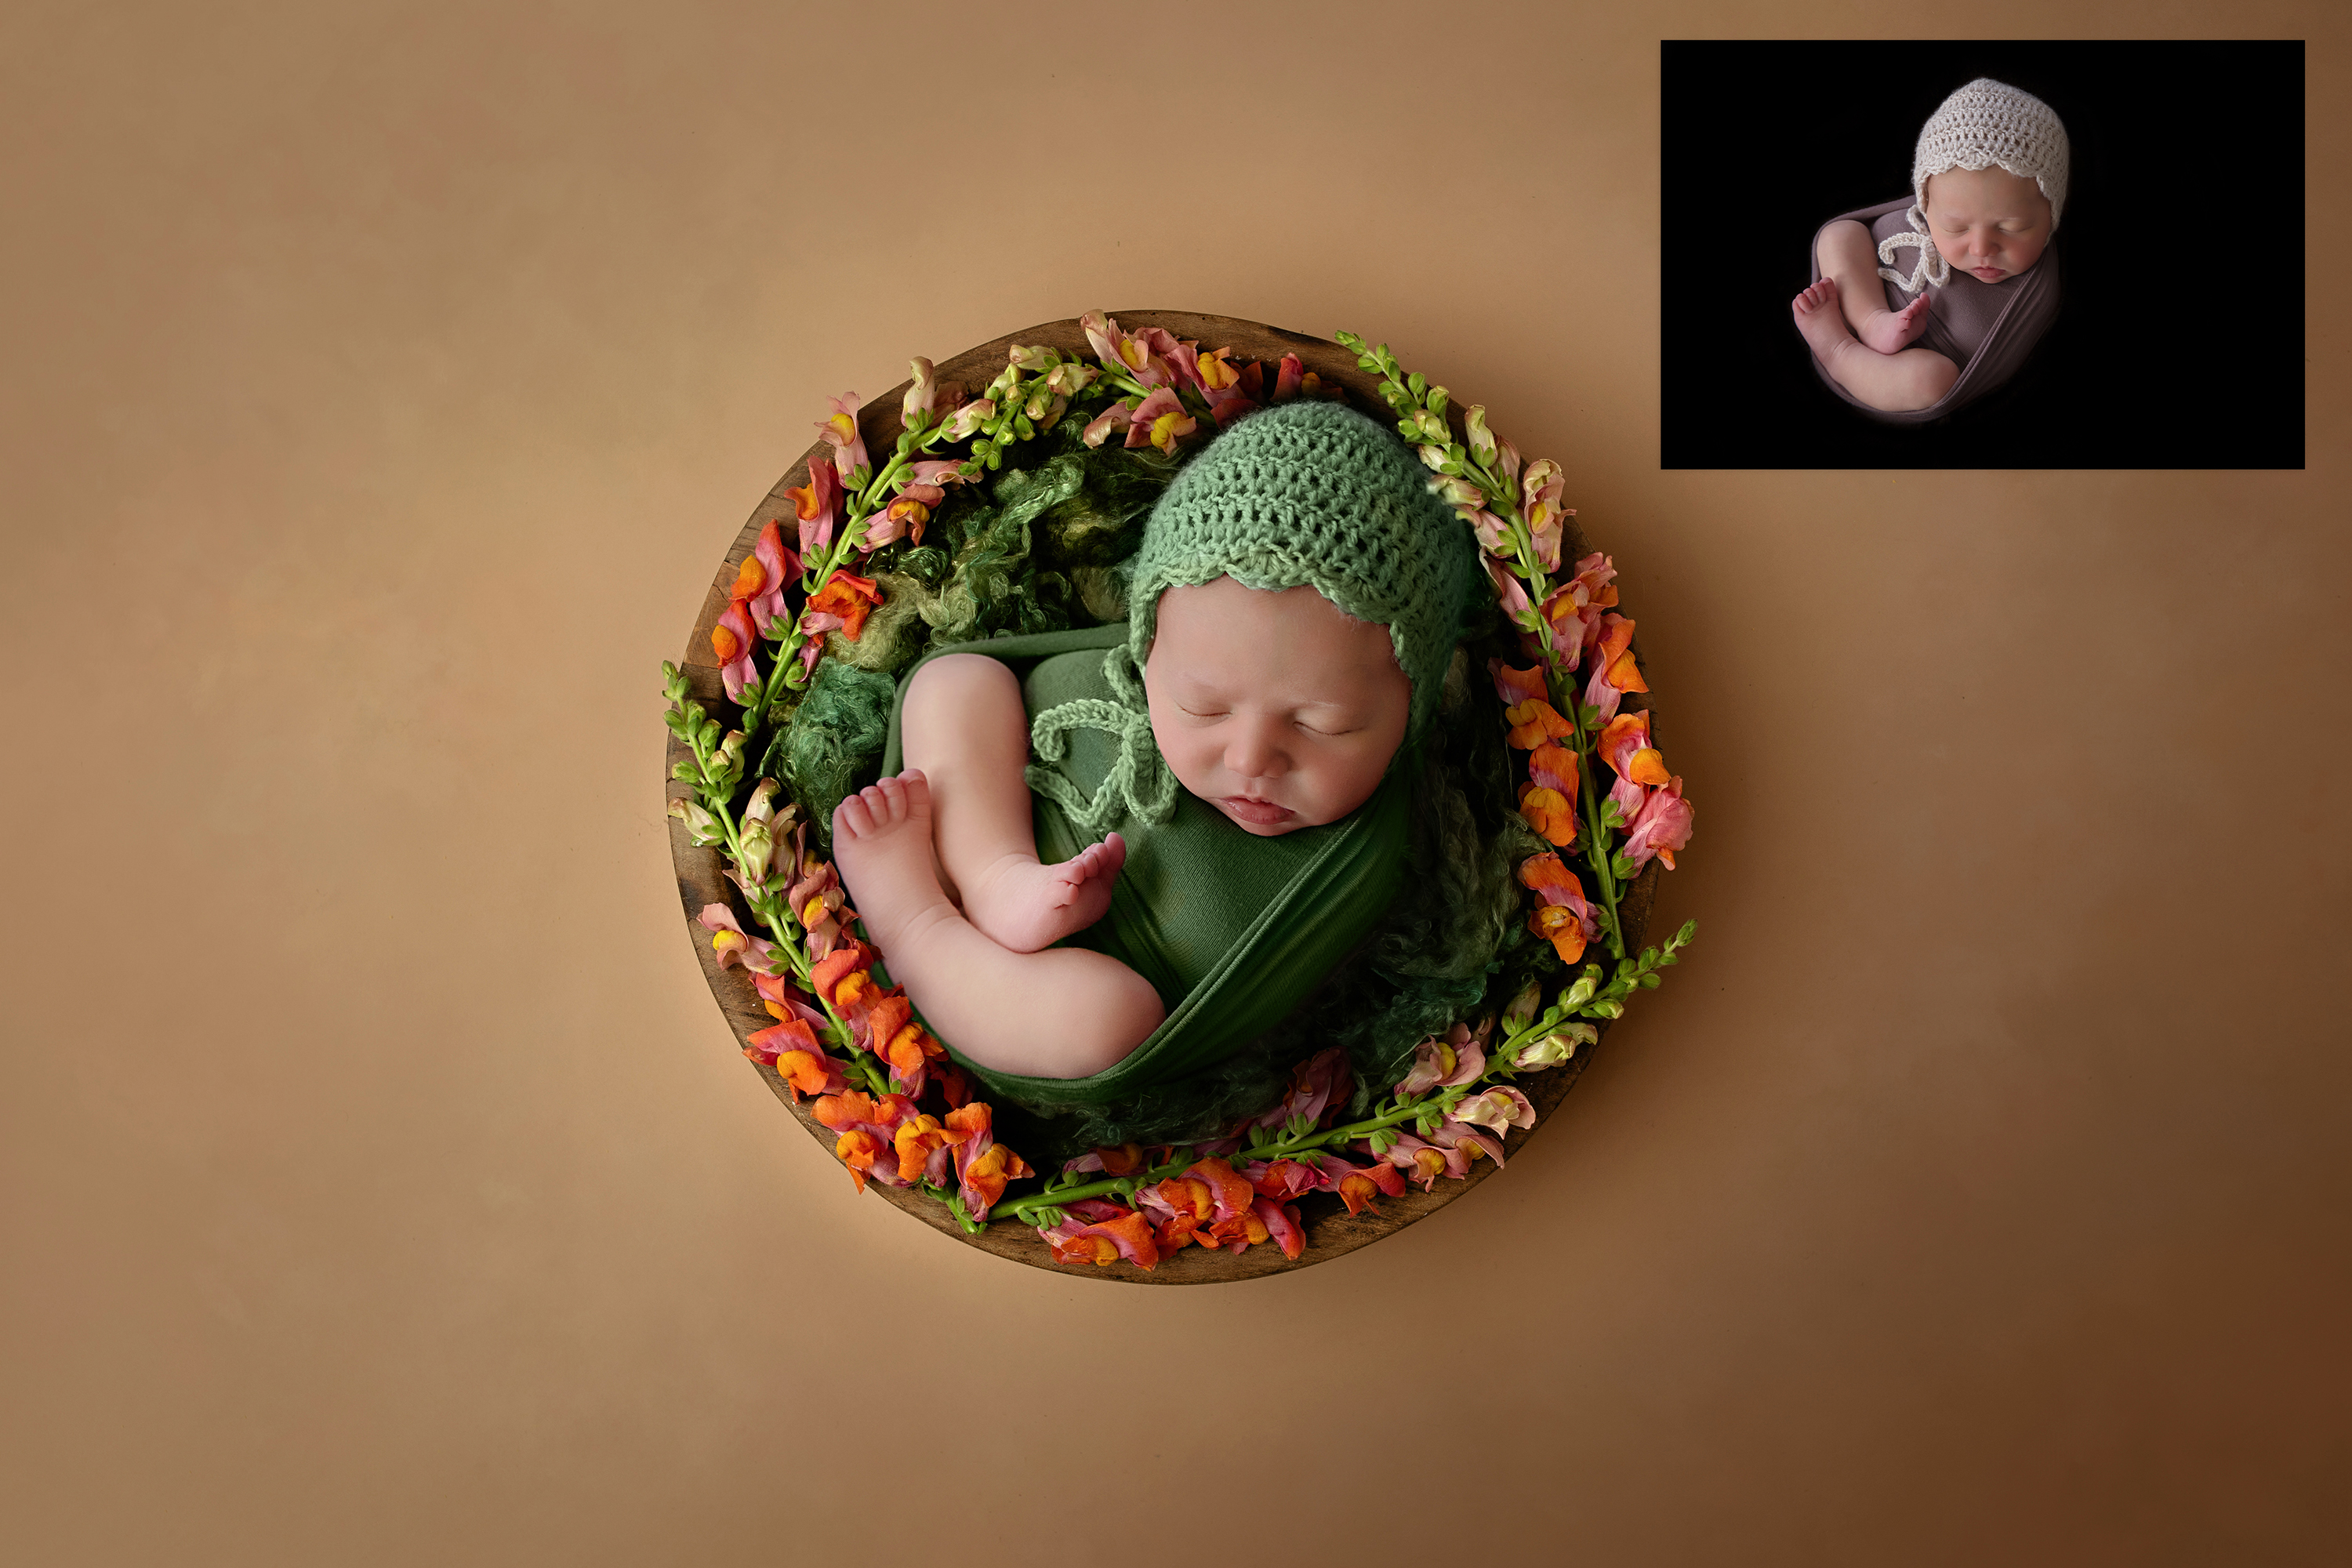 Professional Background Images For Baby Photo Editing Baby Viewer